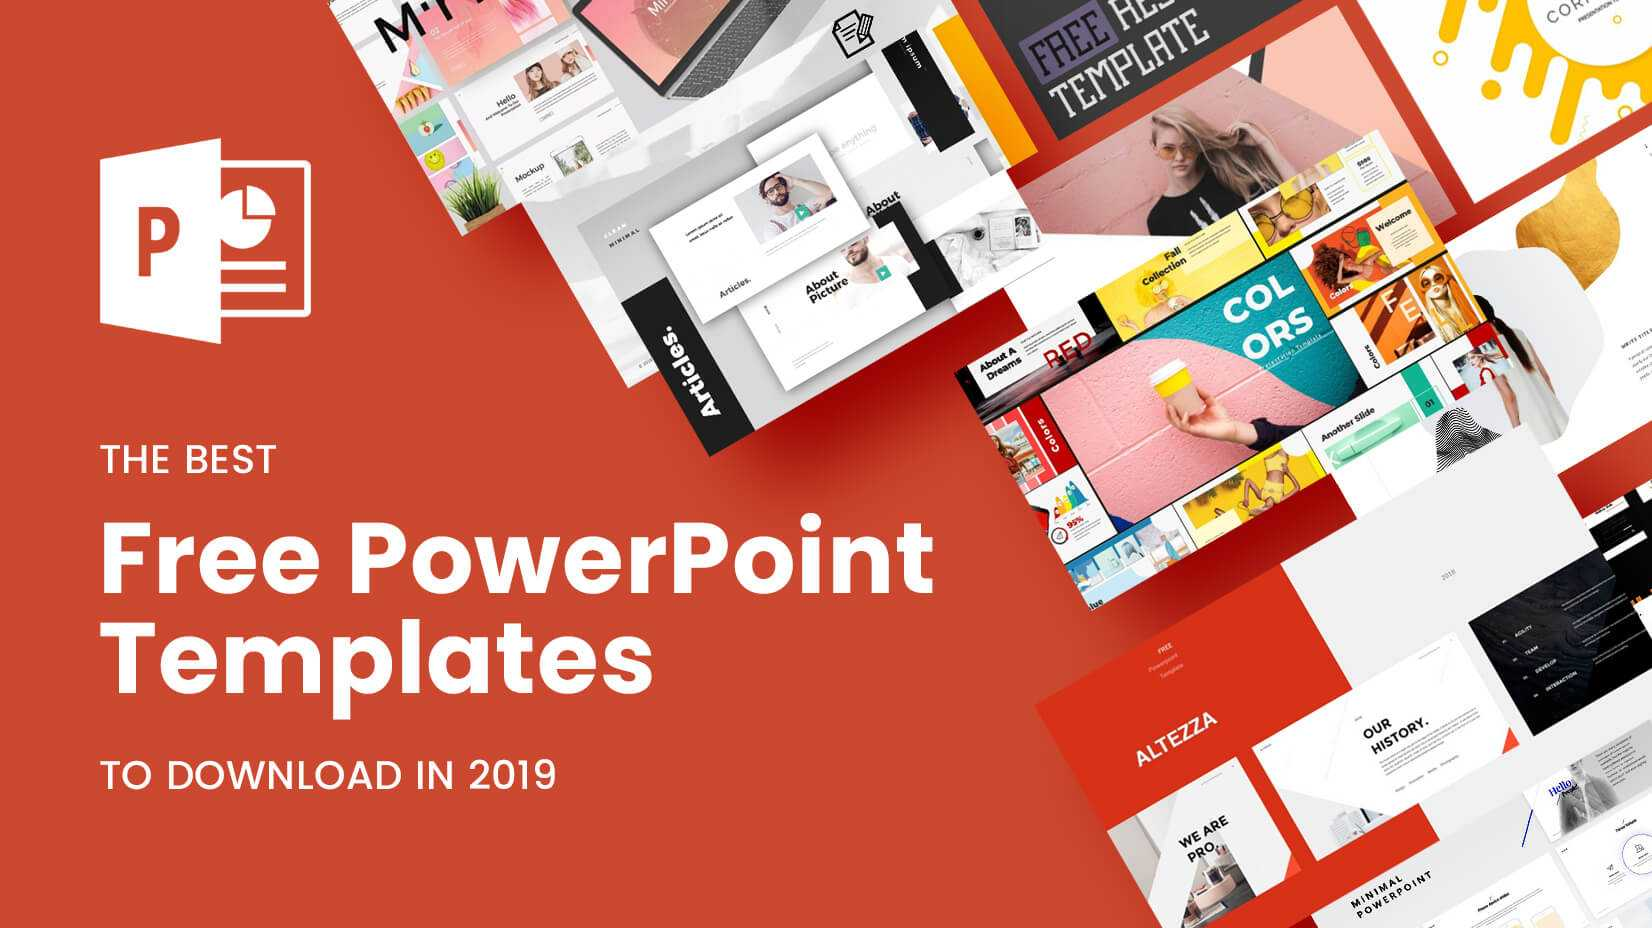 The Best Free Powerpoint Templates To Download In 2019 For Fun Powerpoint Templates Free Download